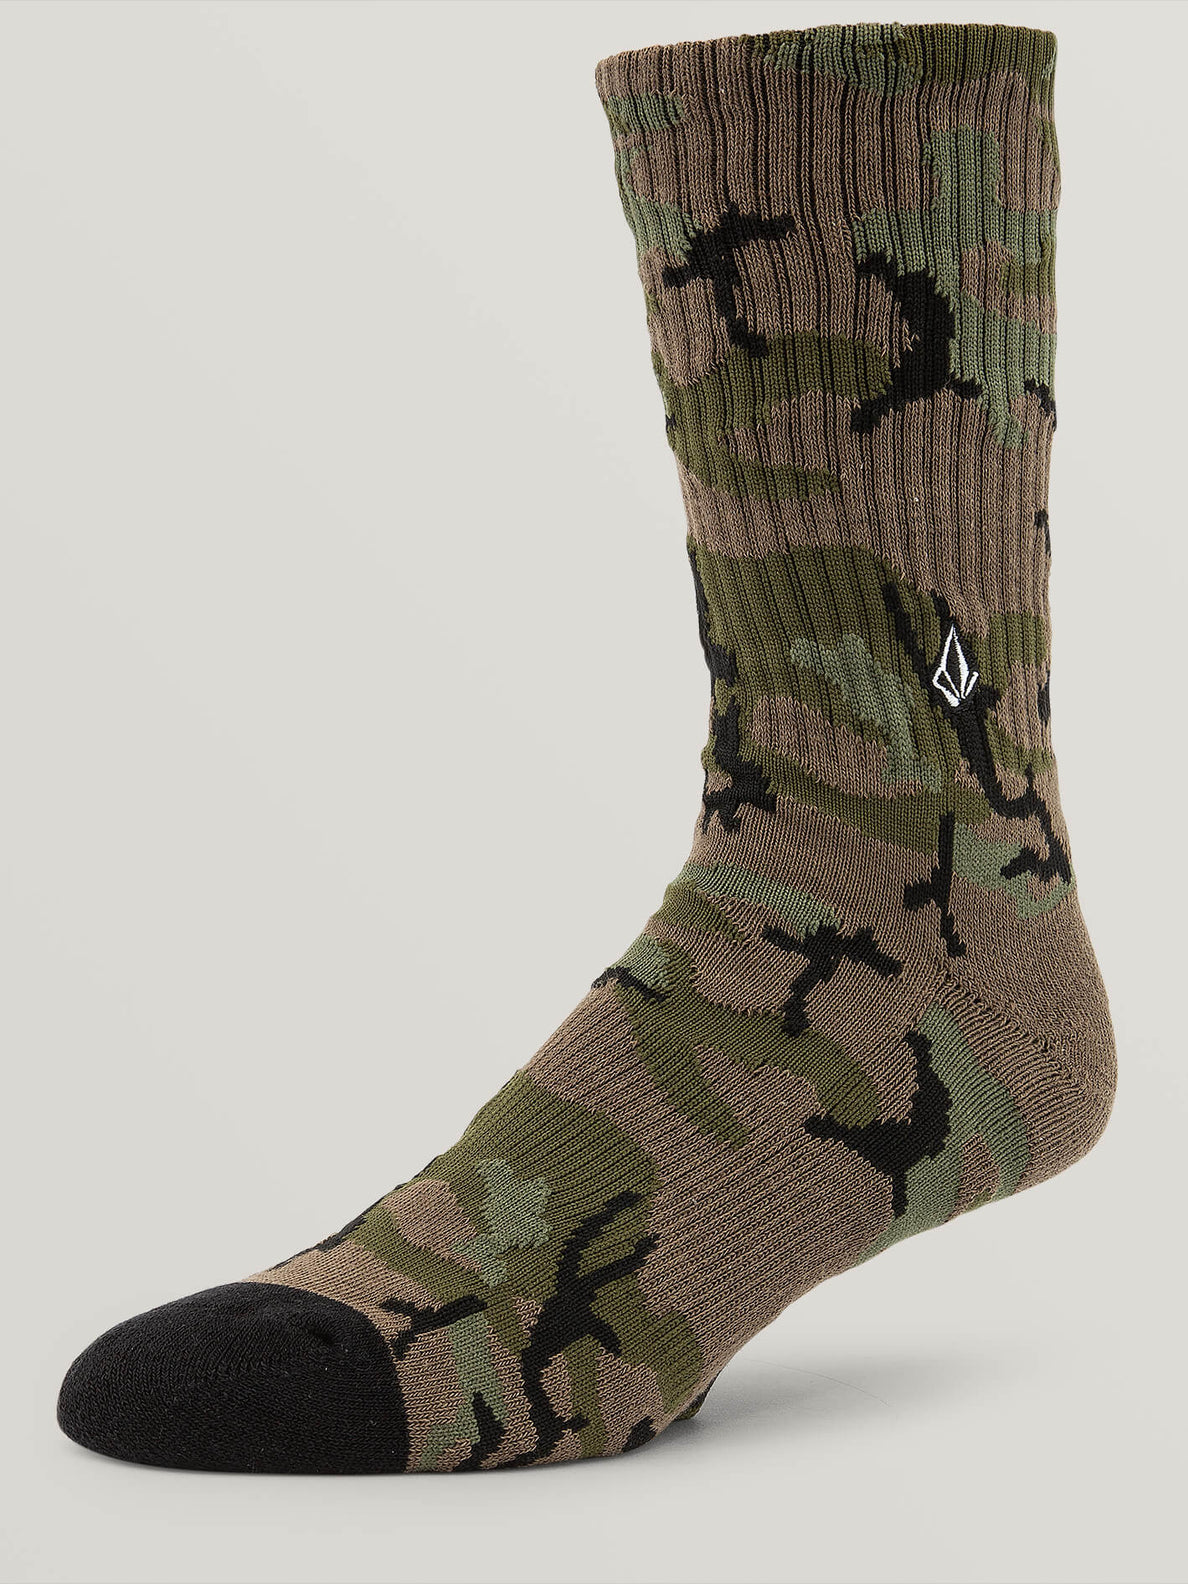 Noa Socks In Camouflage, Second Alternate View